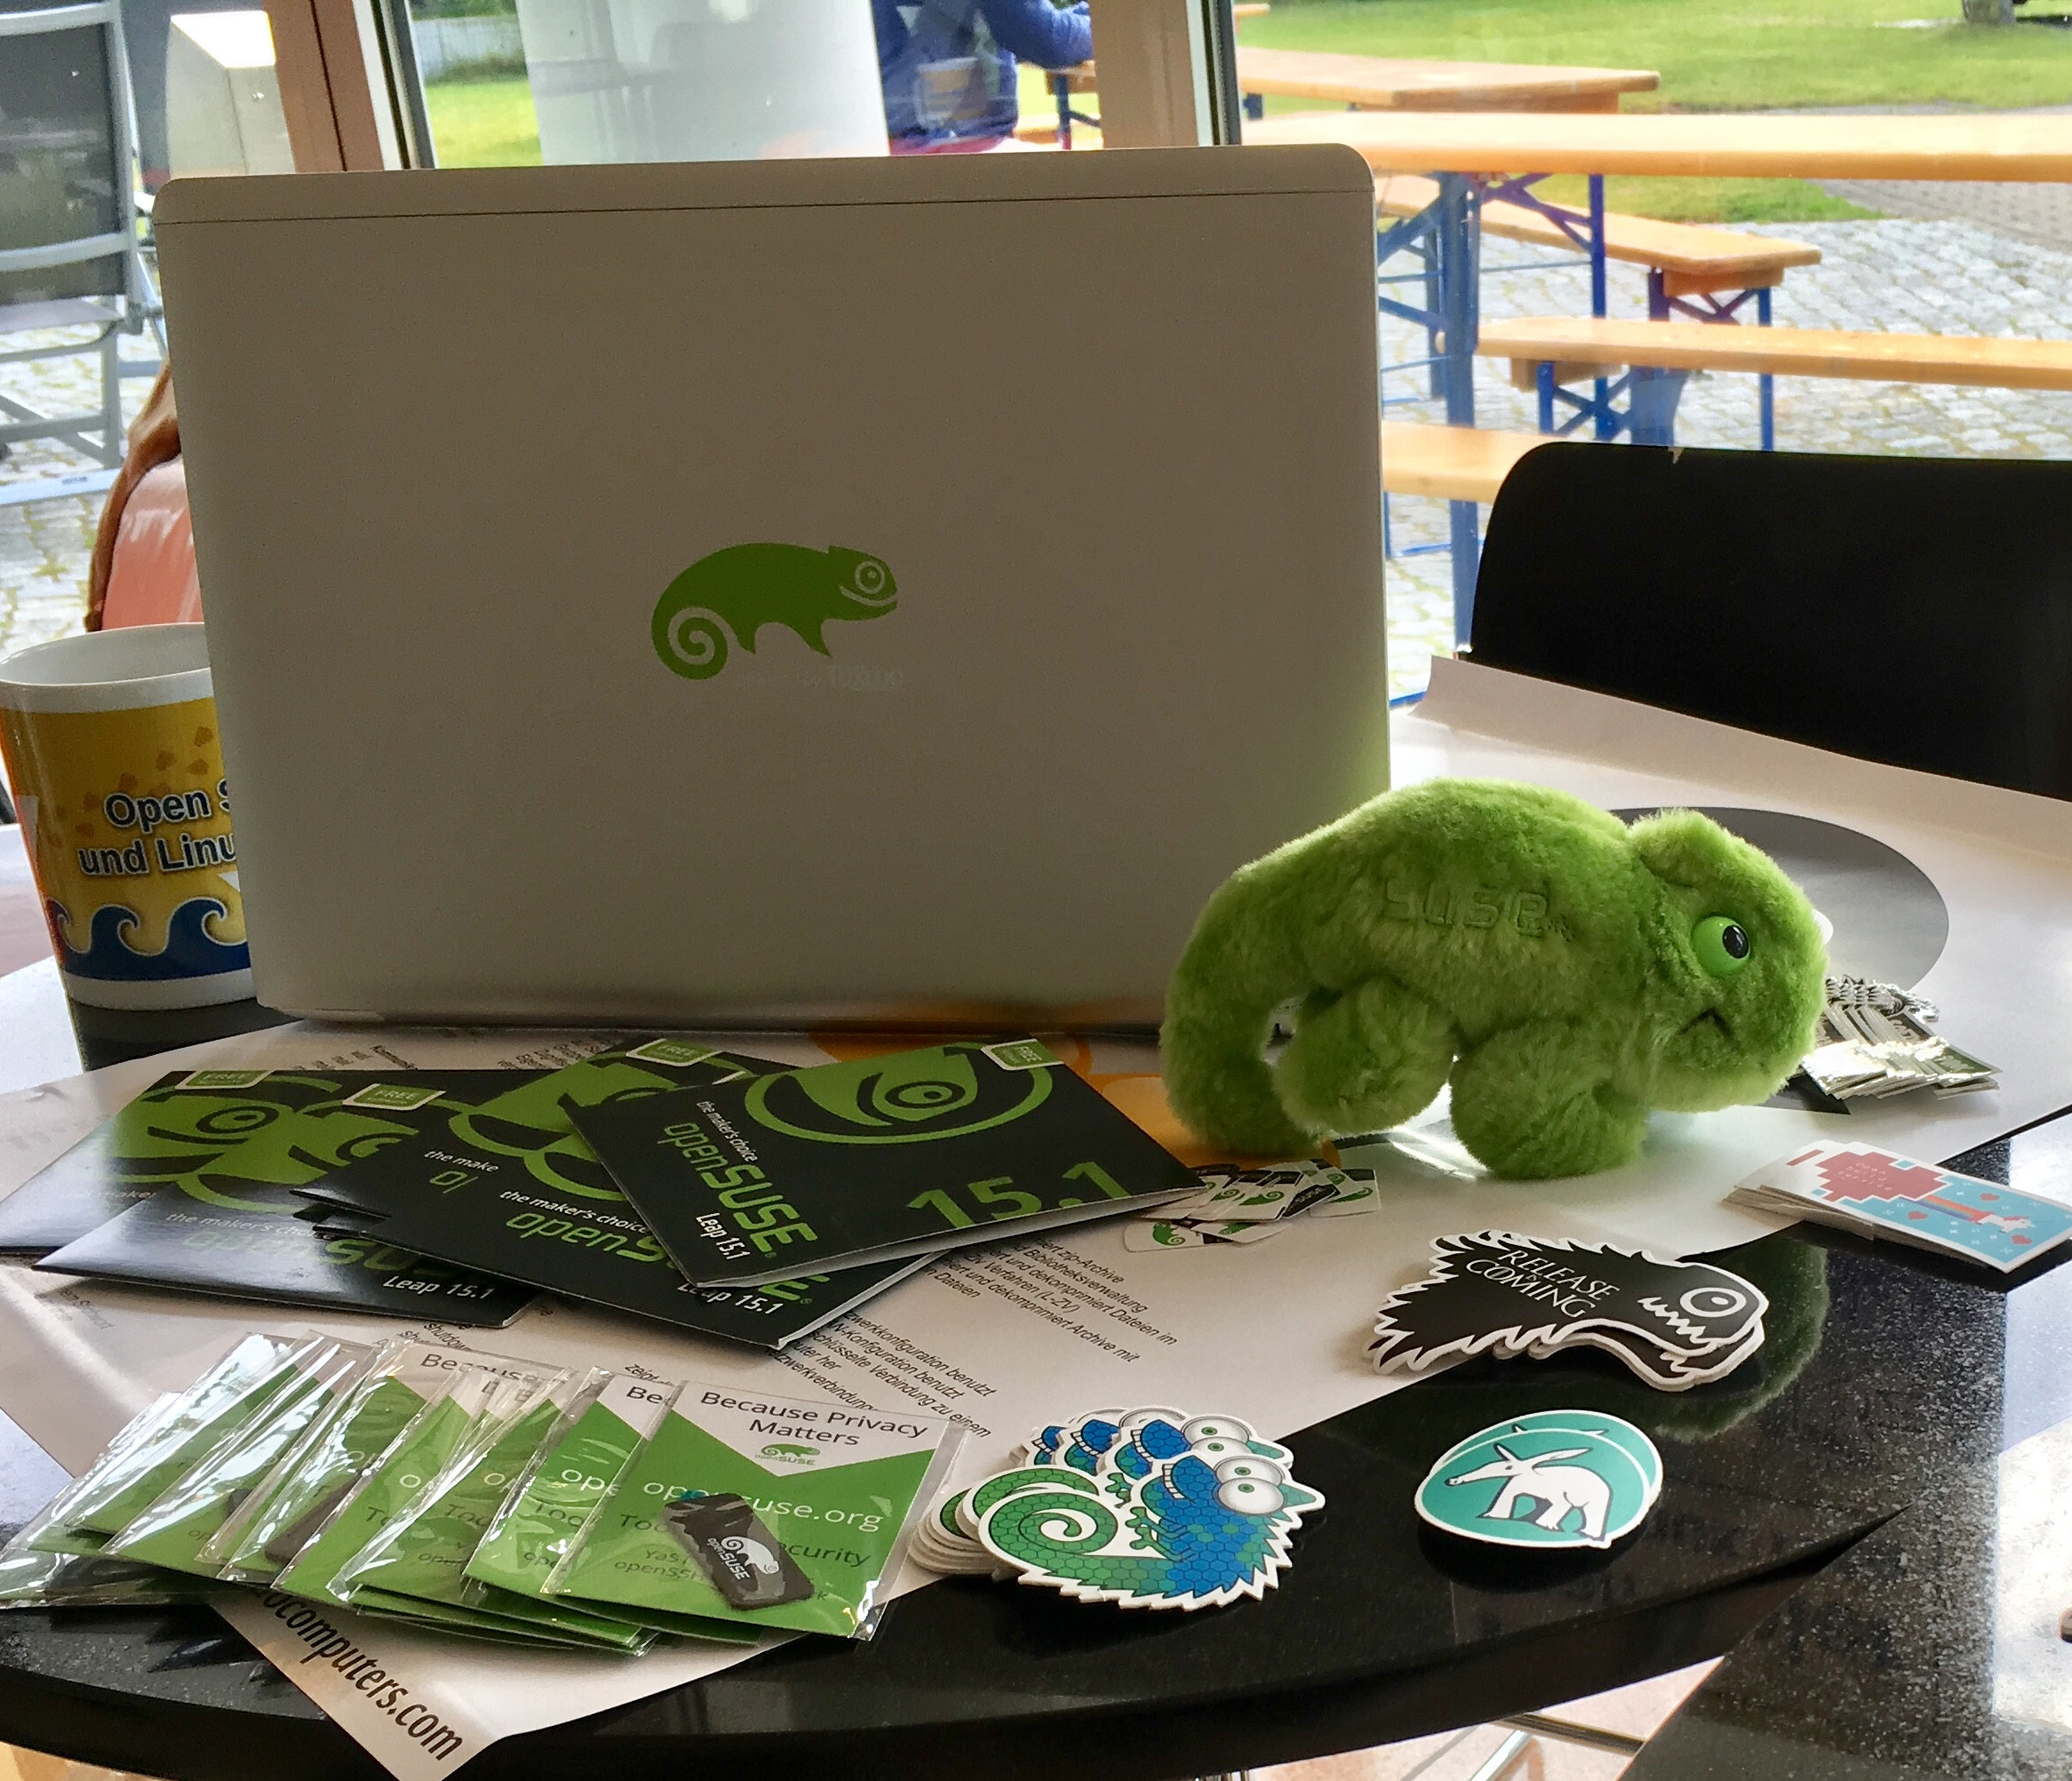 openSUSE-Stand (Foto: Christian Imhorst, CC-0)